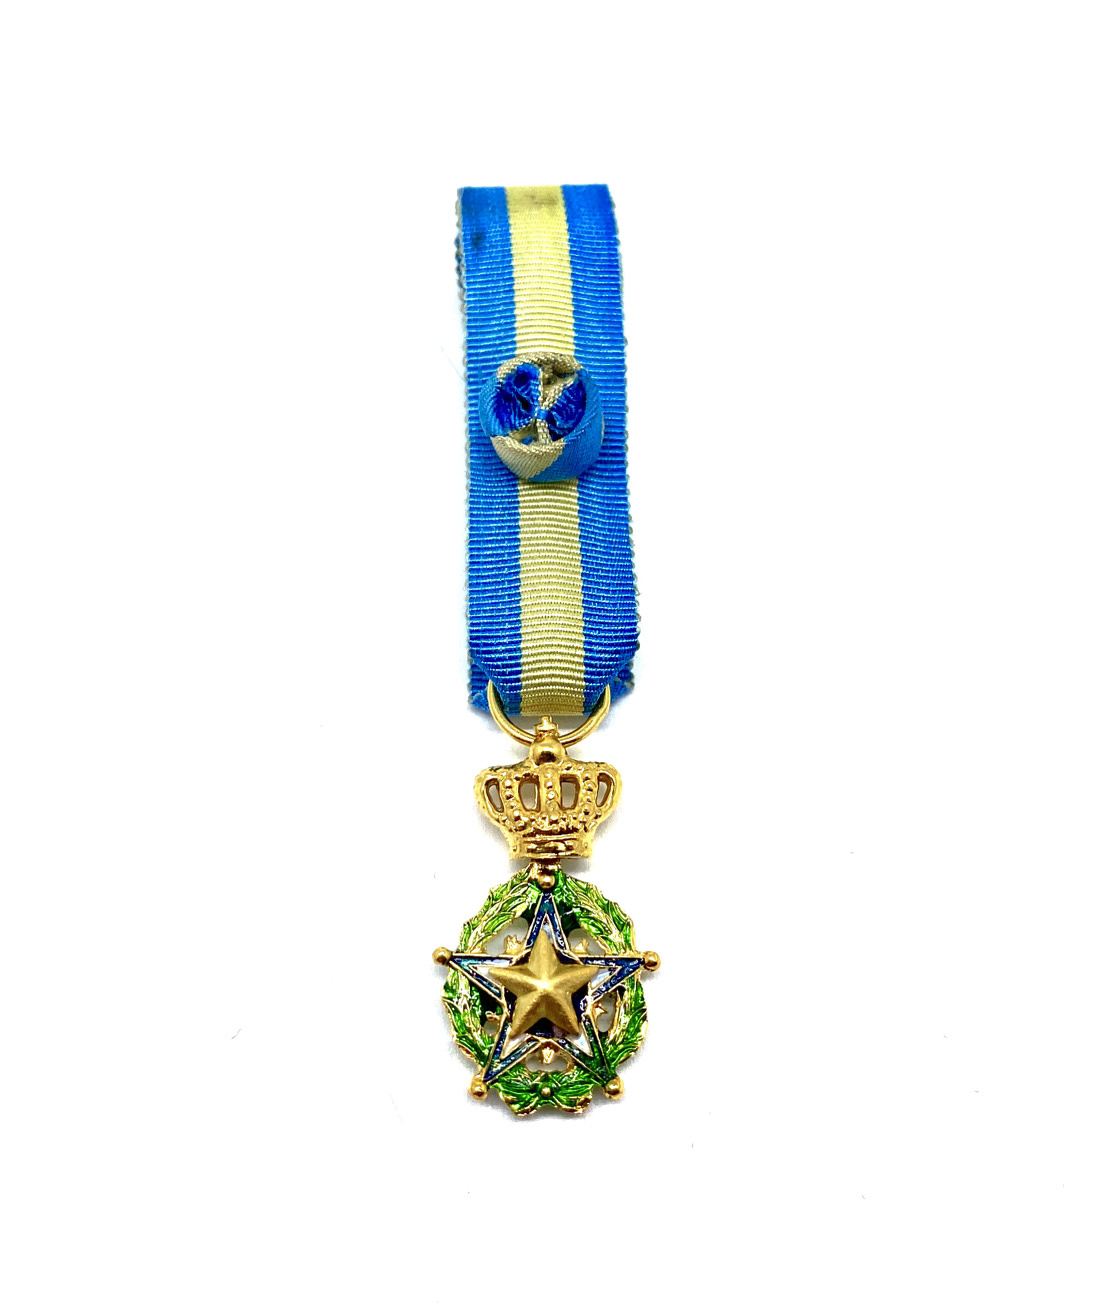 Officer in the Order of the African Star